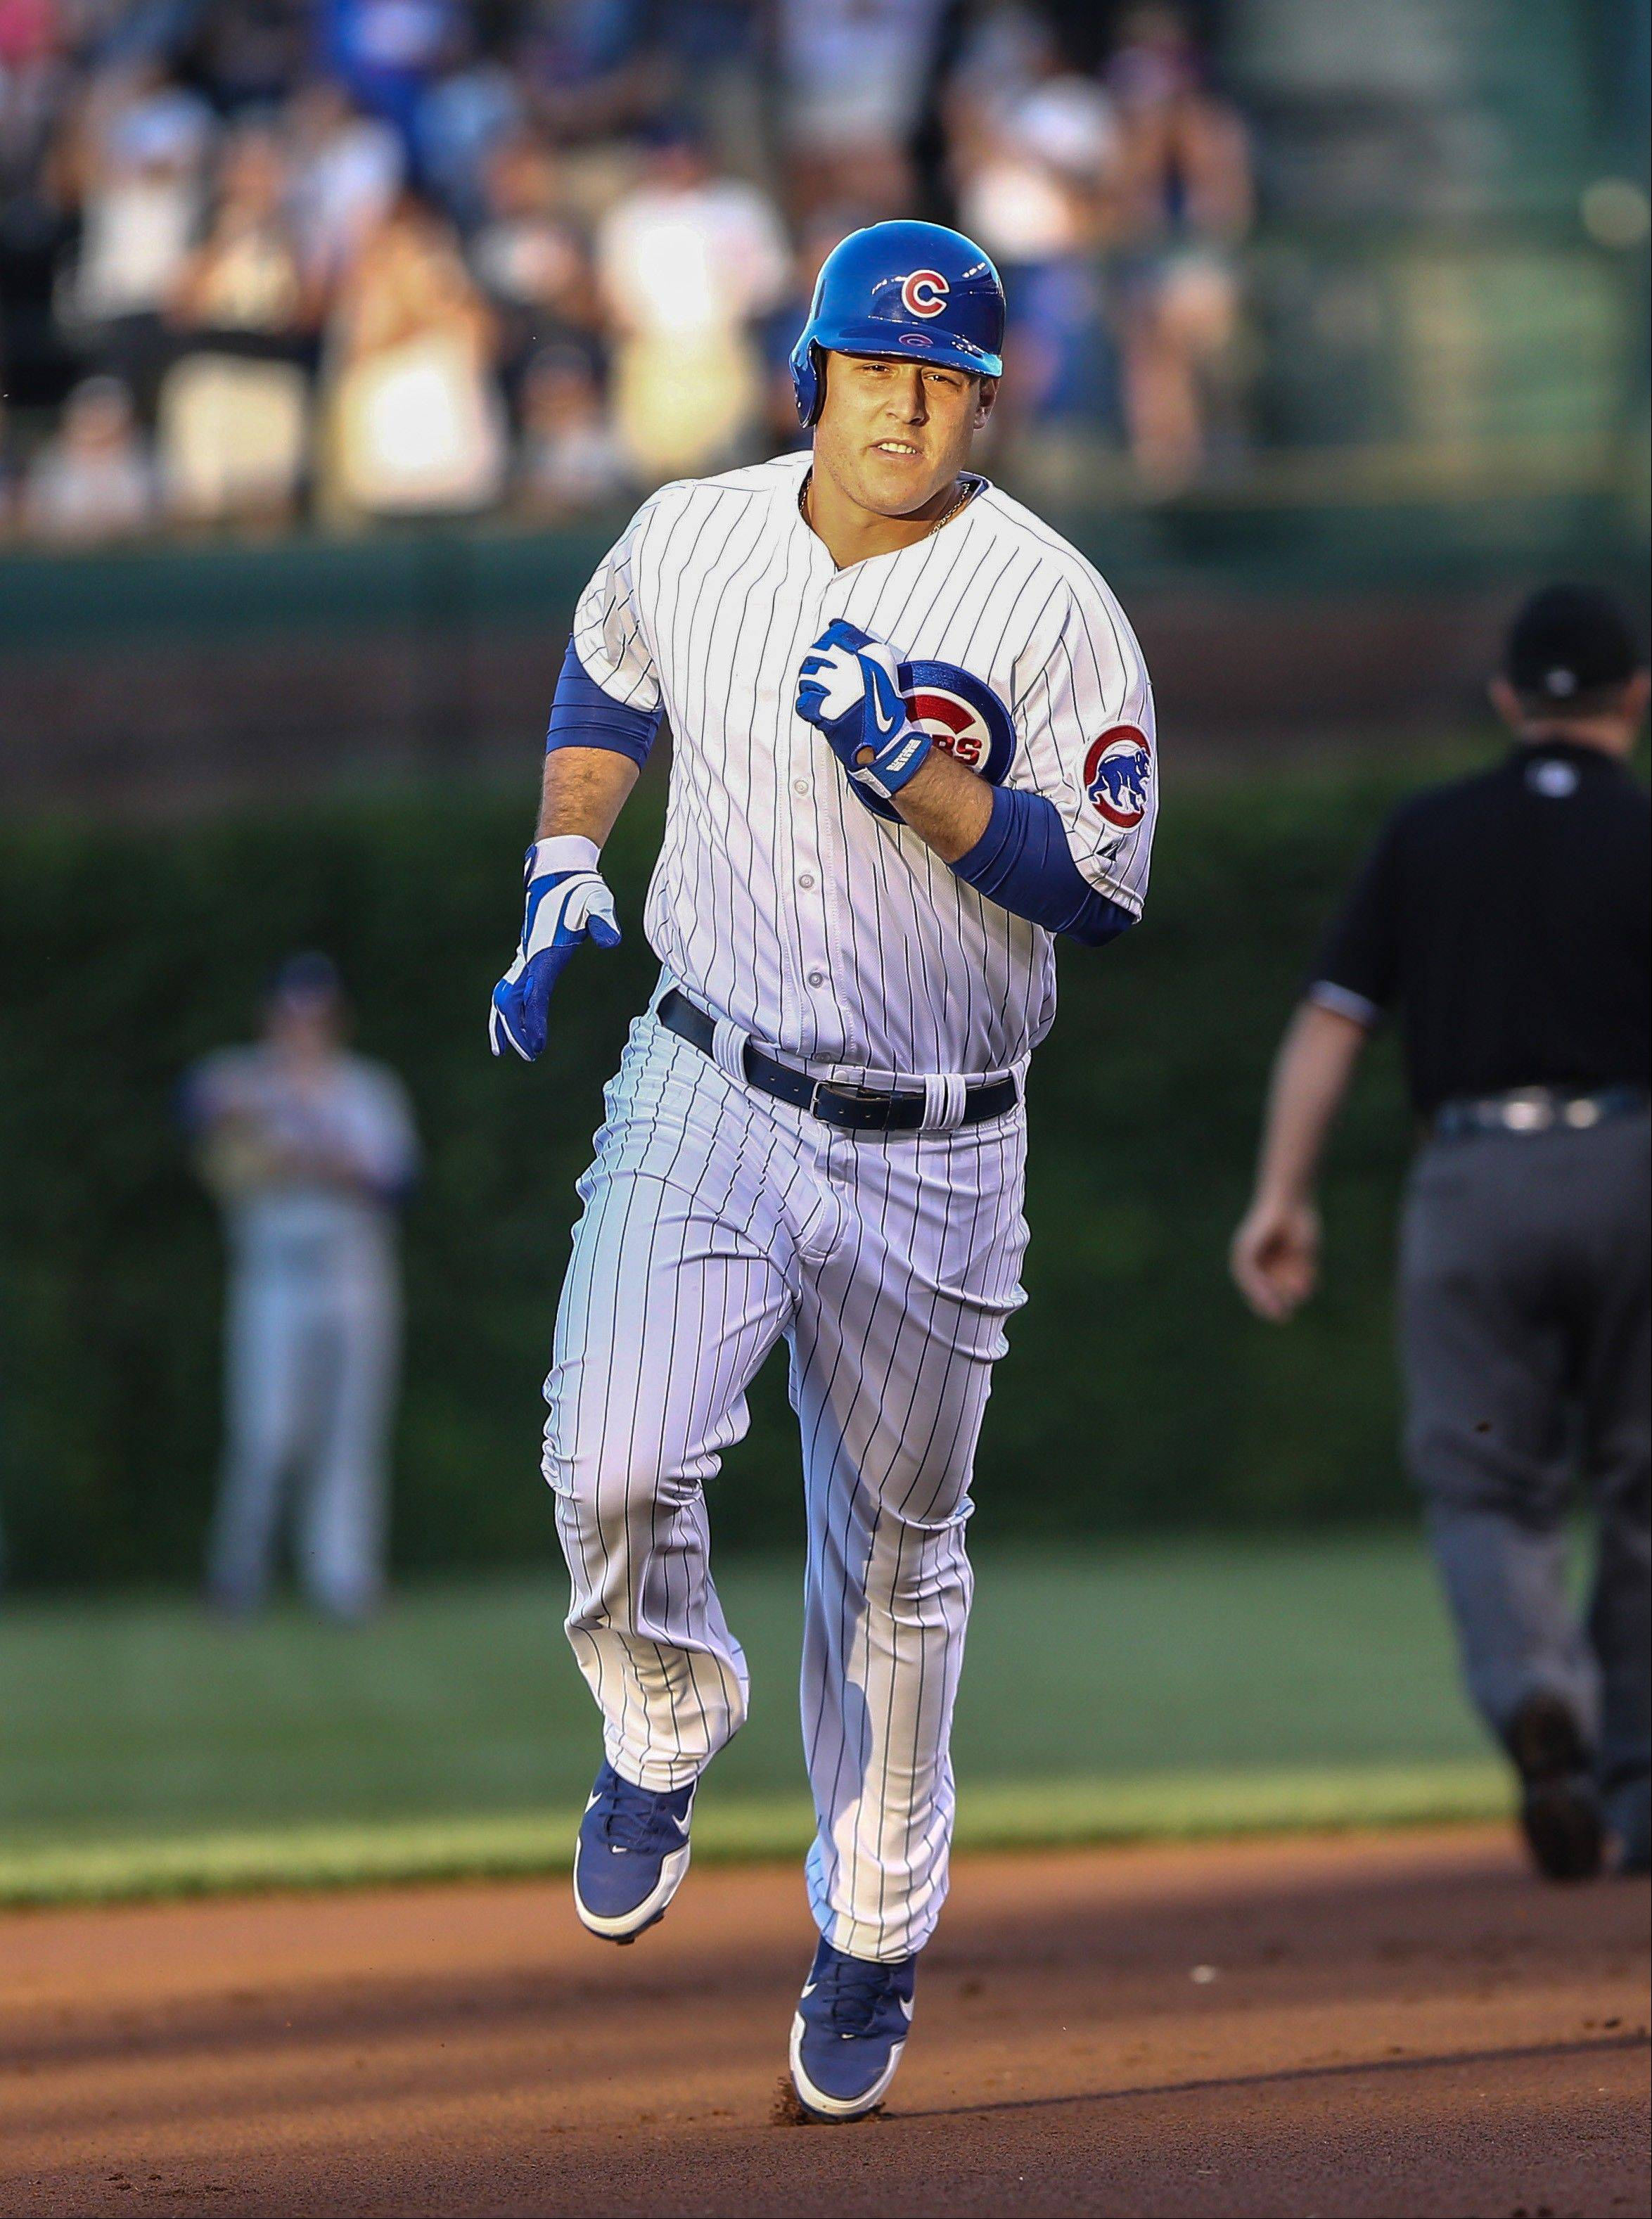 Chicago Cubs' Anthony Rizzo runs the bases after hitting a solo home run in the first inning against the Los Angeles Dodgers in a baseball game in Chicago on Thursday, Aug. 1, 2013.